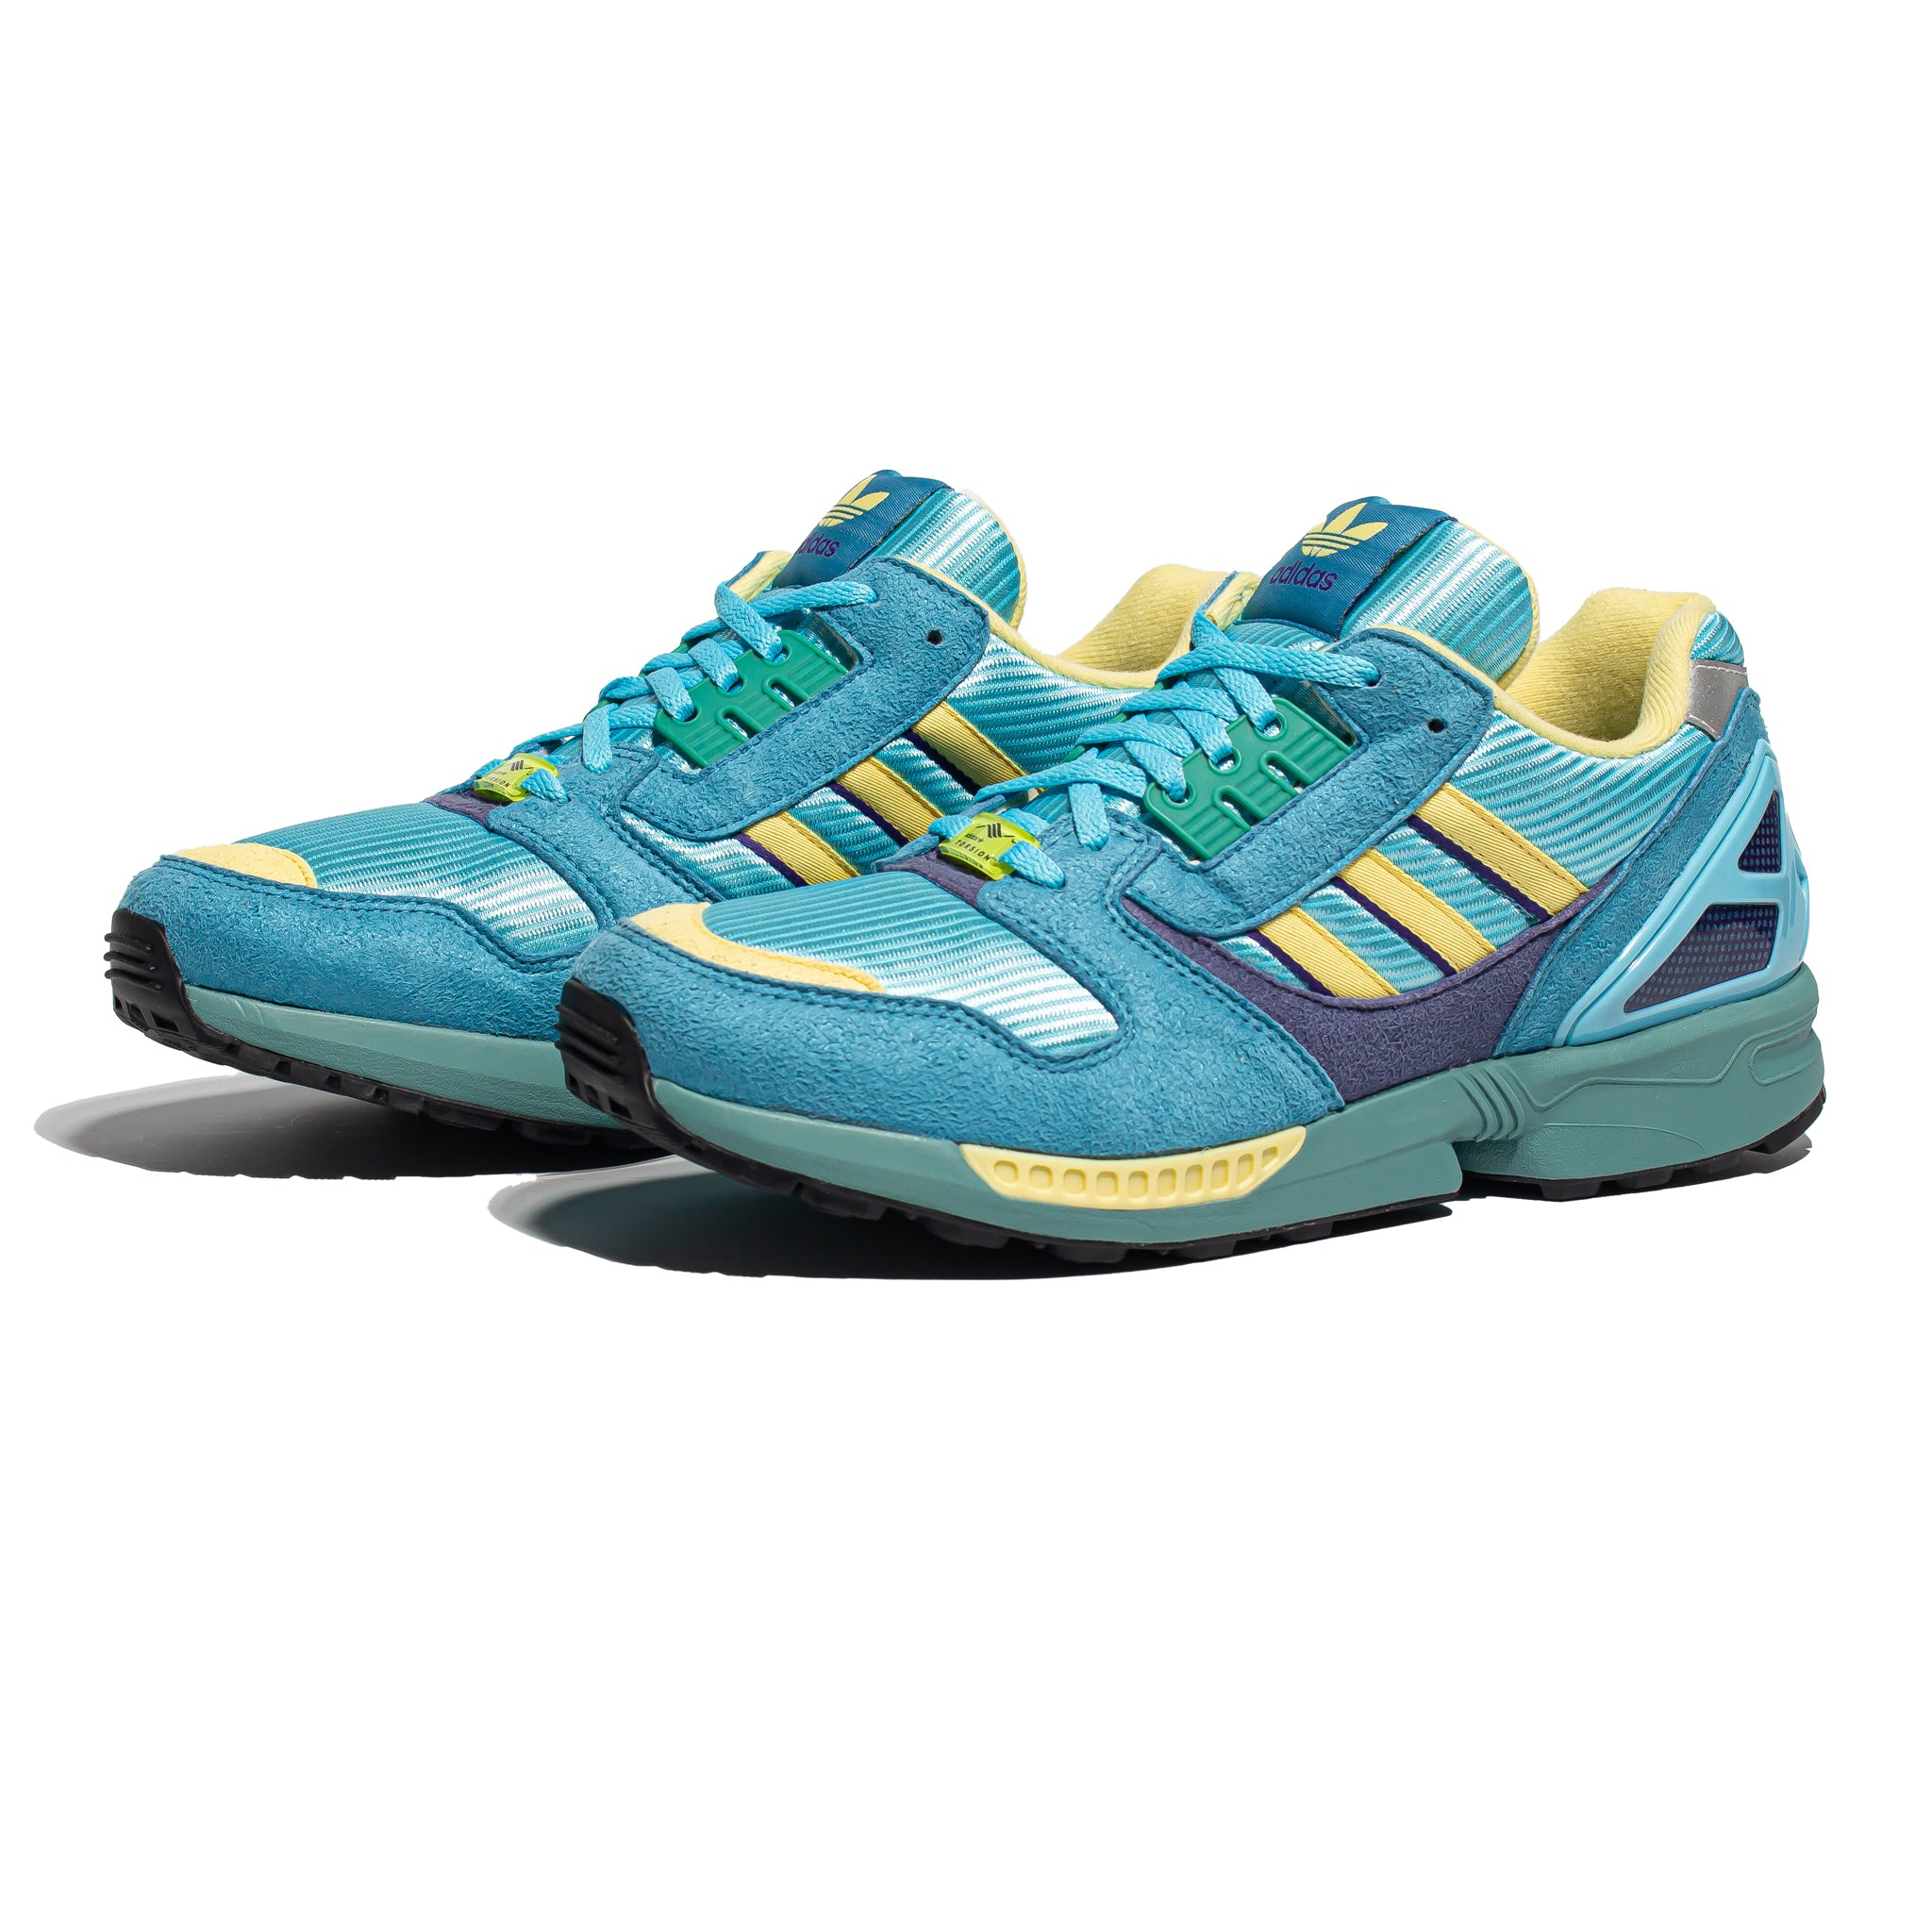 ADIDAS ZX 8000 Light Aqua/Tactile Steel